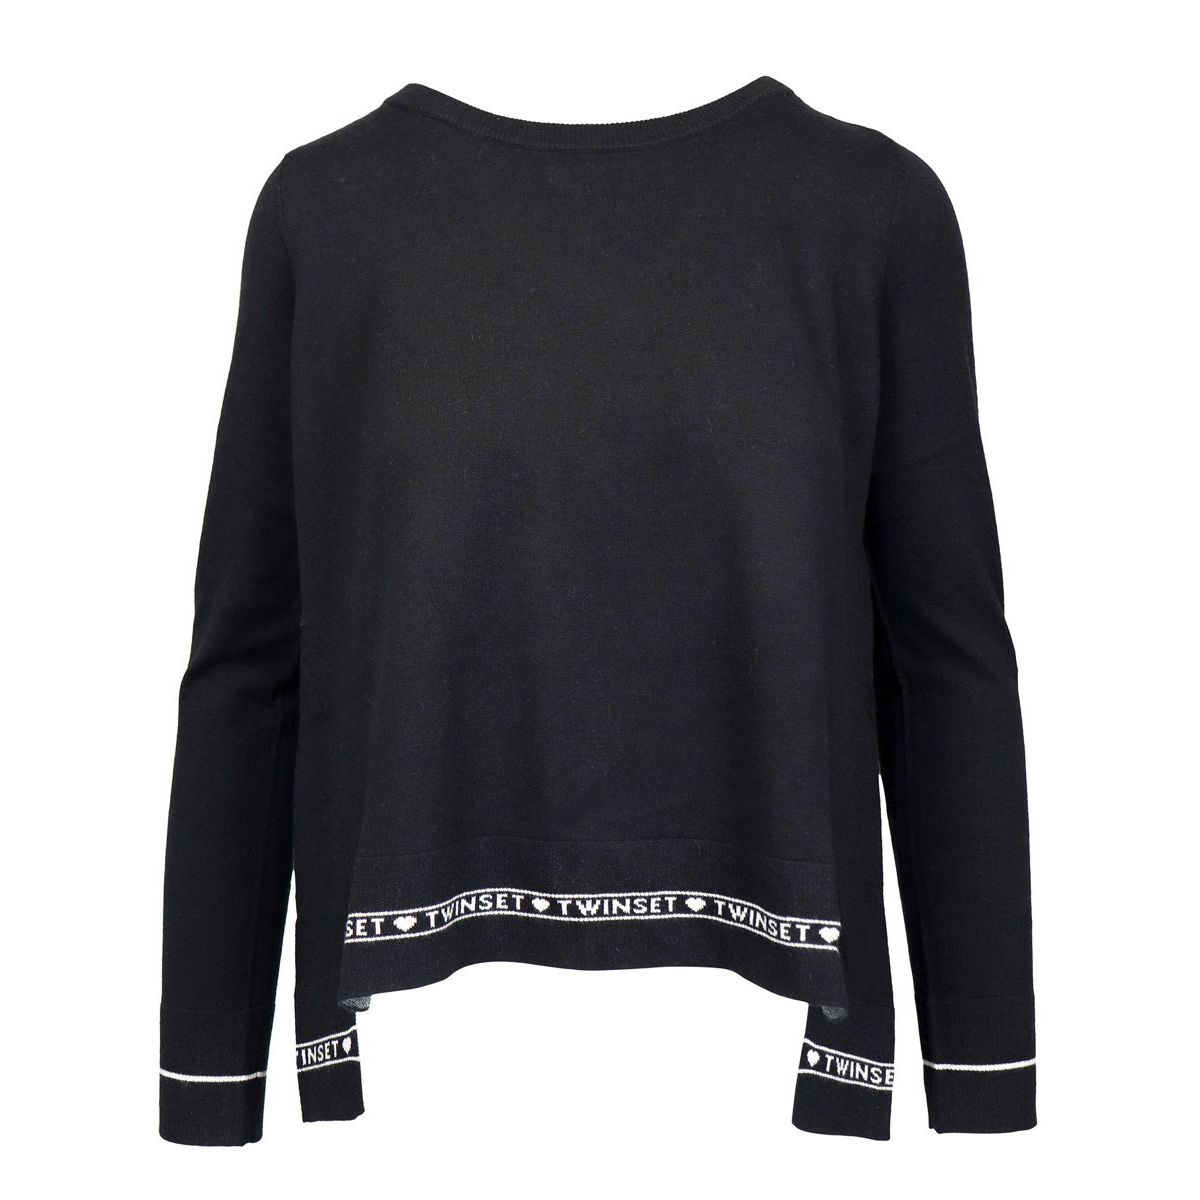 Silk and cashmere blend sweater with jacquard logo Black Twin-Set